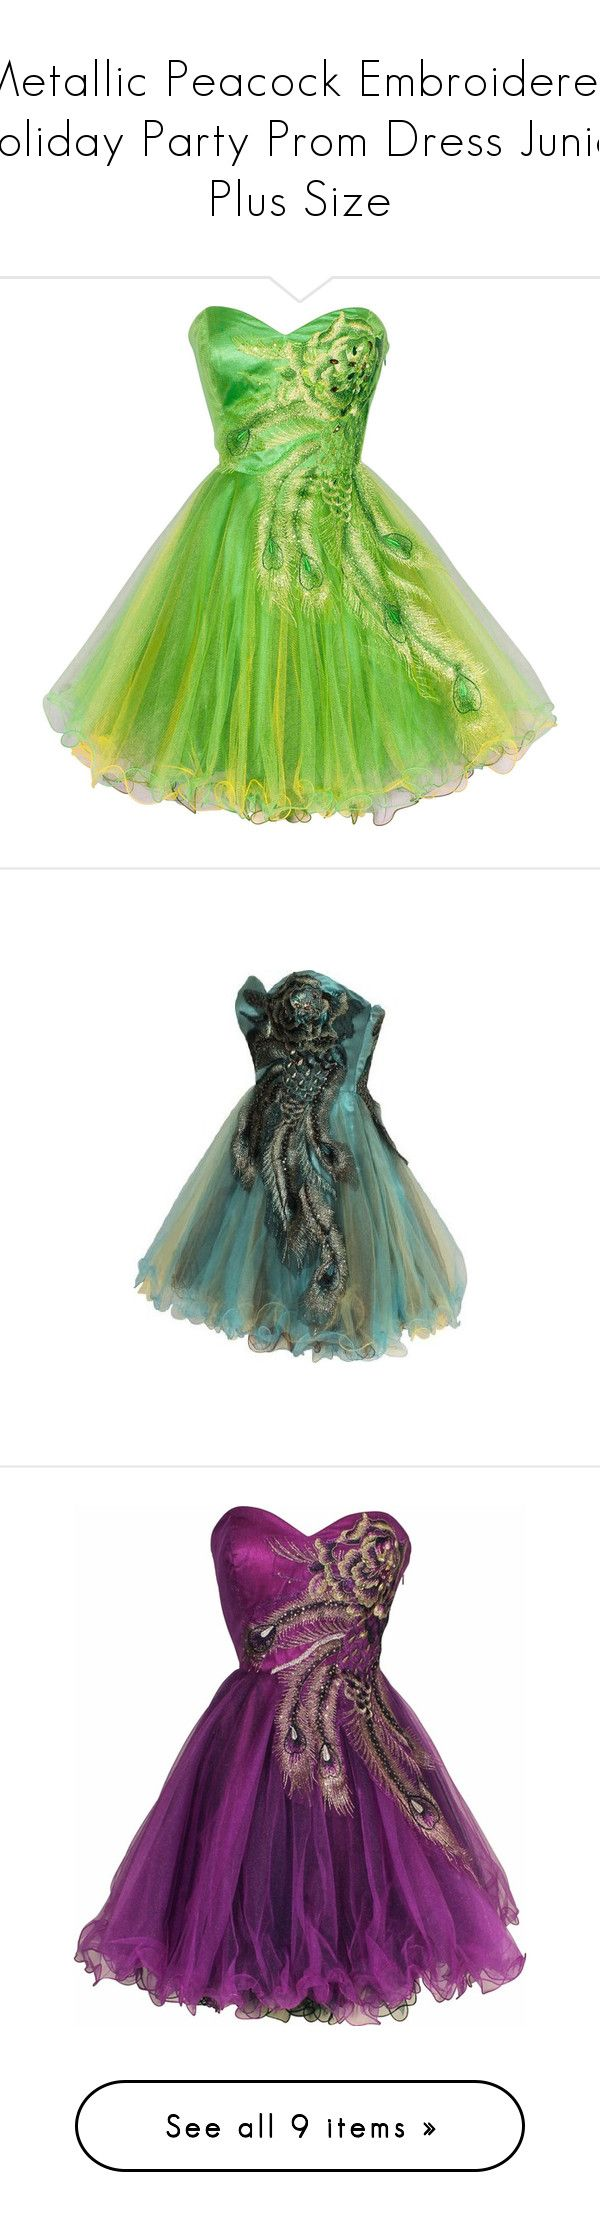 """""""Metallic Peacock Embroidered Holiday Party Prom Dress Junior Plus Size"""" by qwertyuiop-sparta ❤ liked on Polyvore featuring dresses, short dresses, green cocktail dress, plus size prom dresses, plus size green dress, green party dress, plus size party cocktail dresses, formal dresses, plus size red dress and prom dresses"""